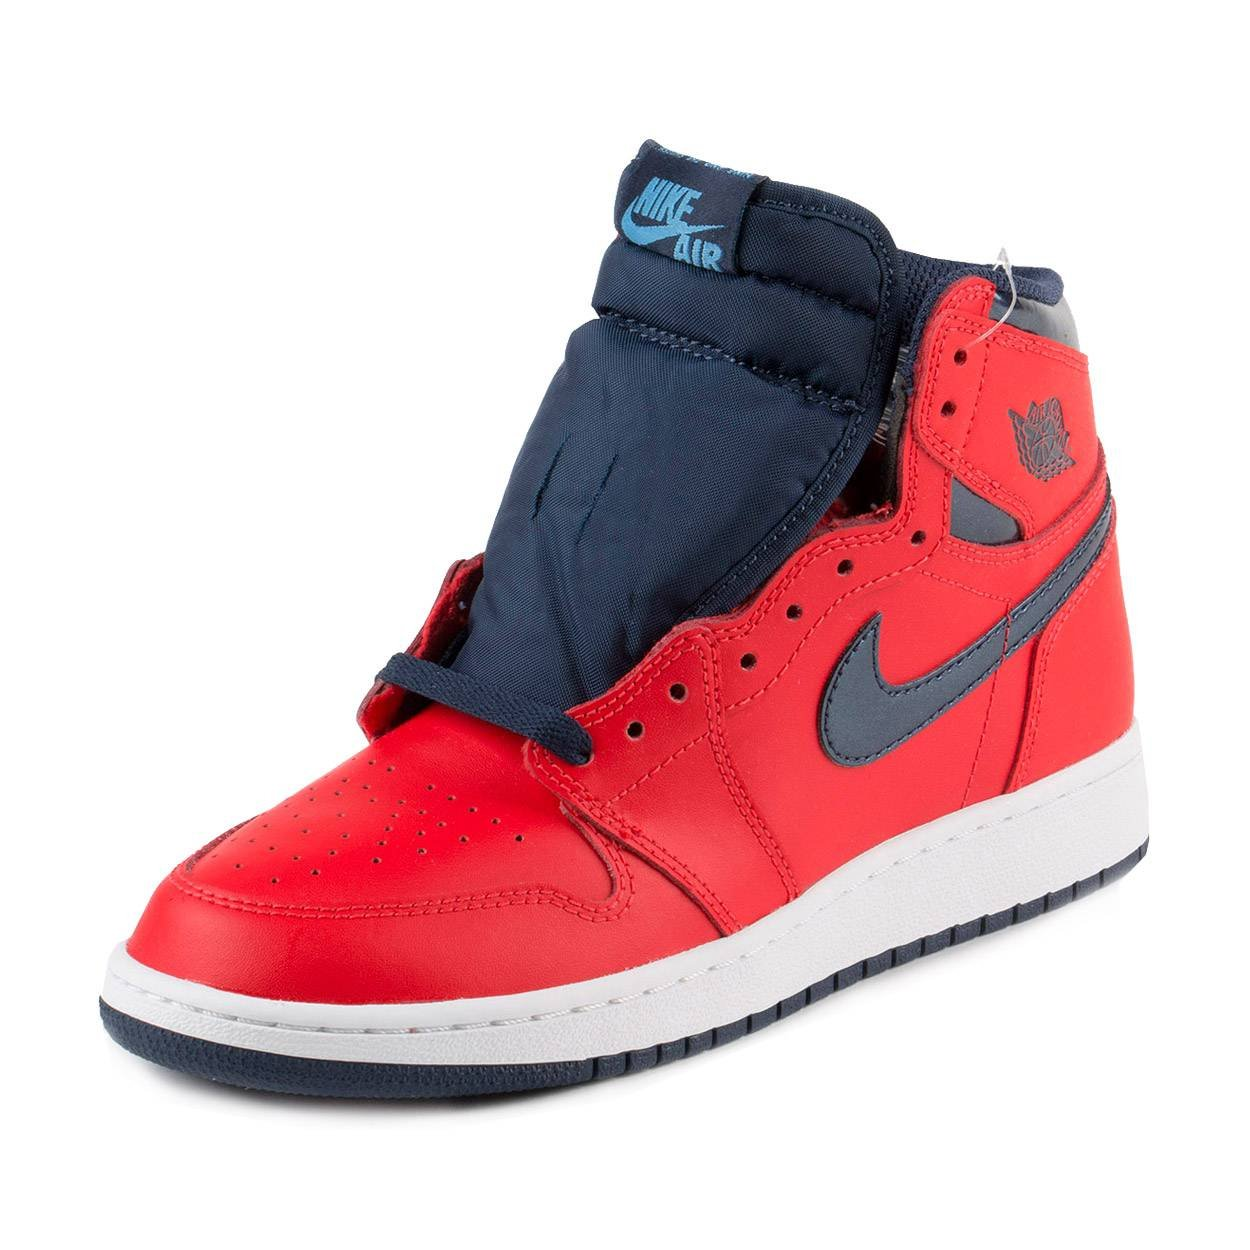 brand new 87d0b 50764 Galleon - Jordan Air 1 Retro High OG BG David Letterman Youth Sneakers New  Light Crimson - 6.5